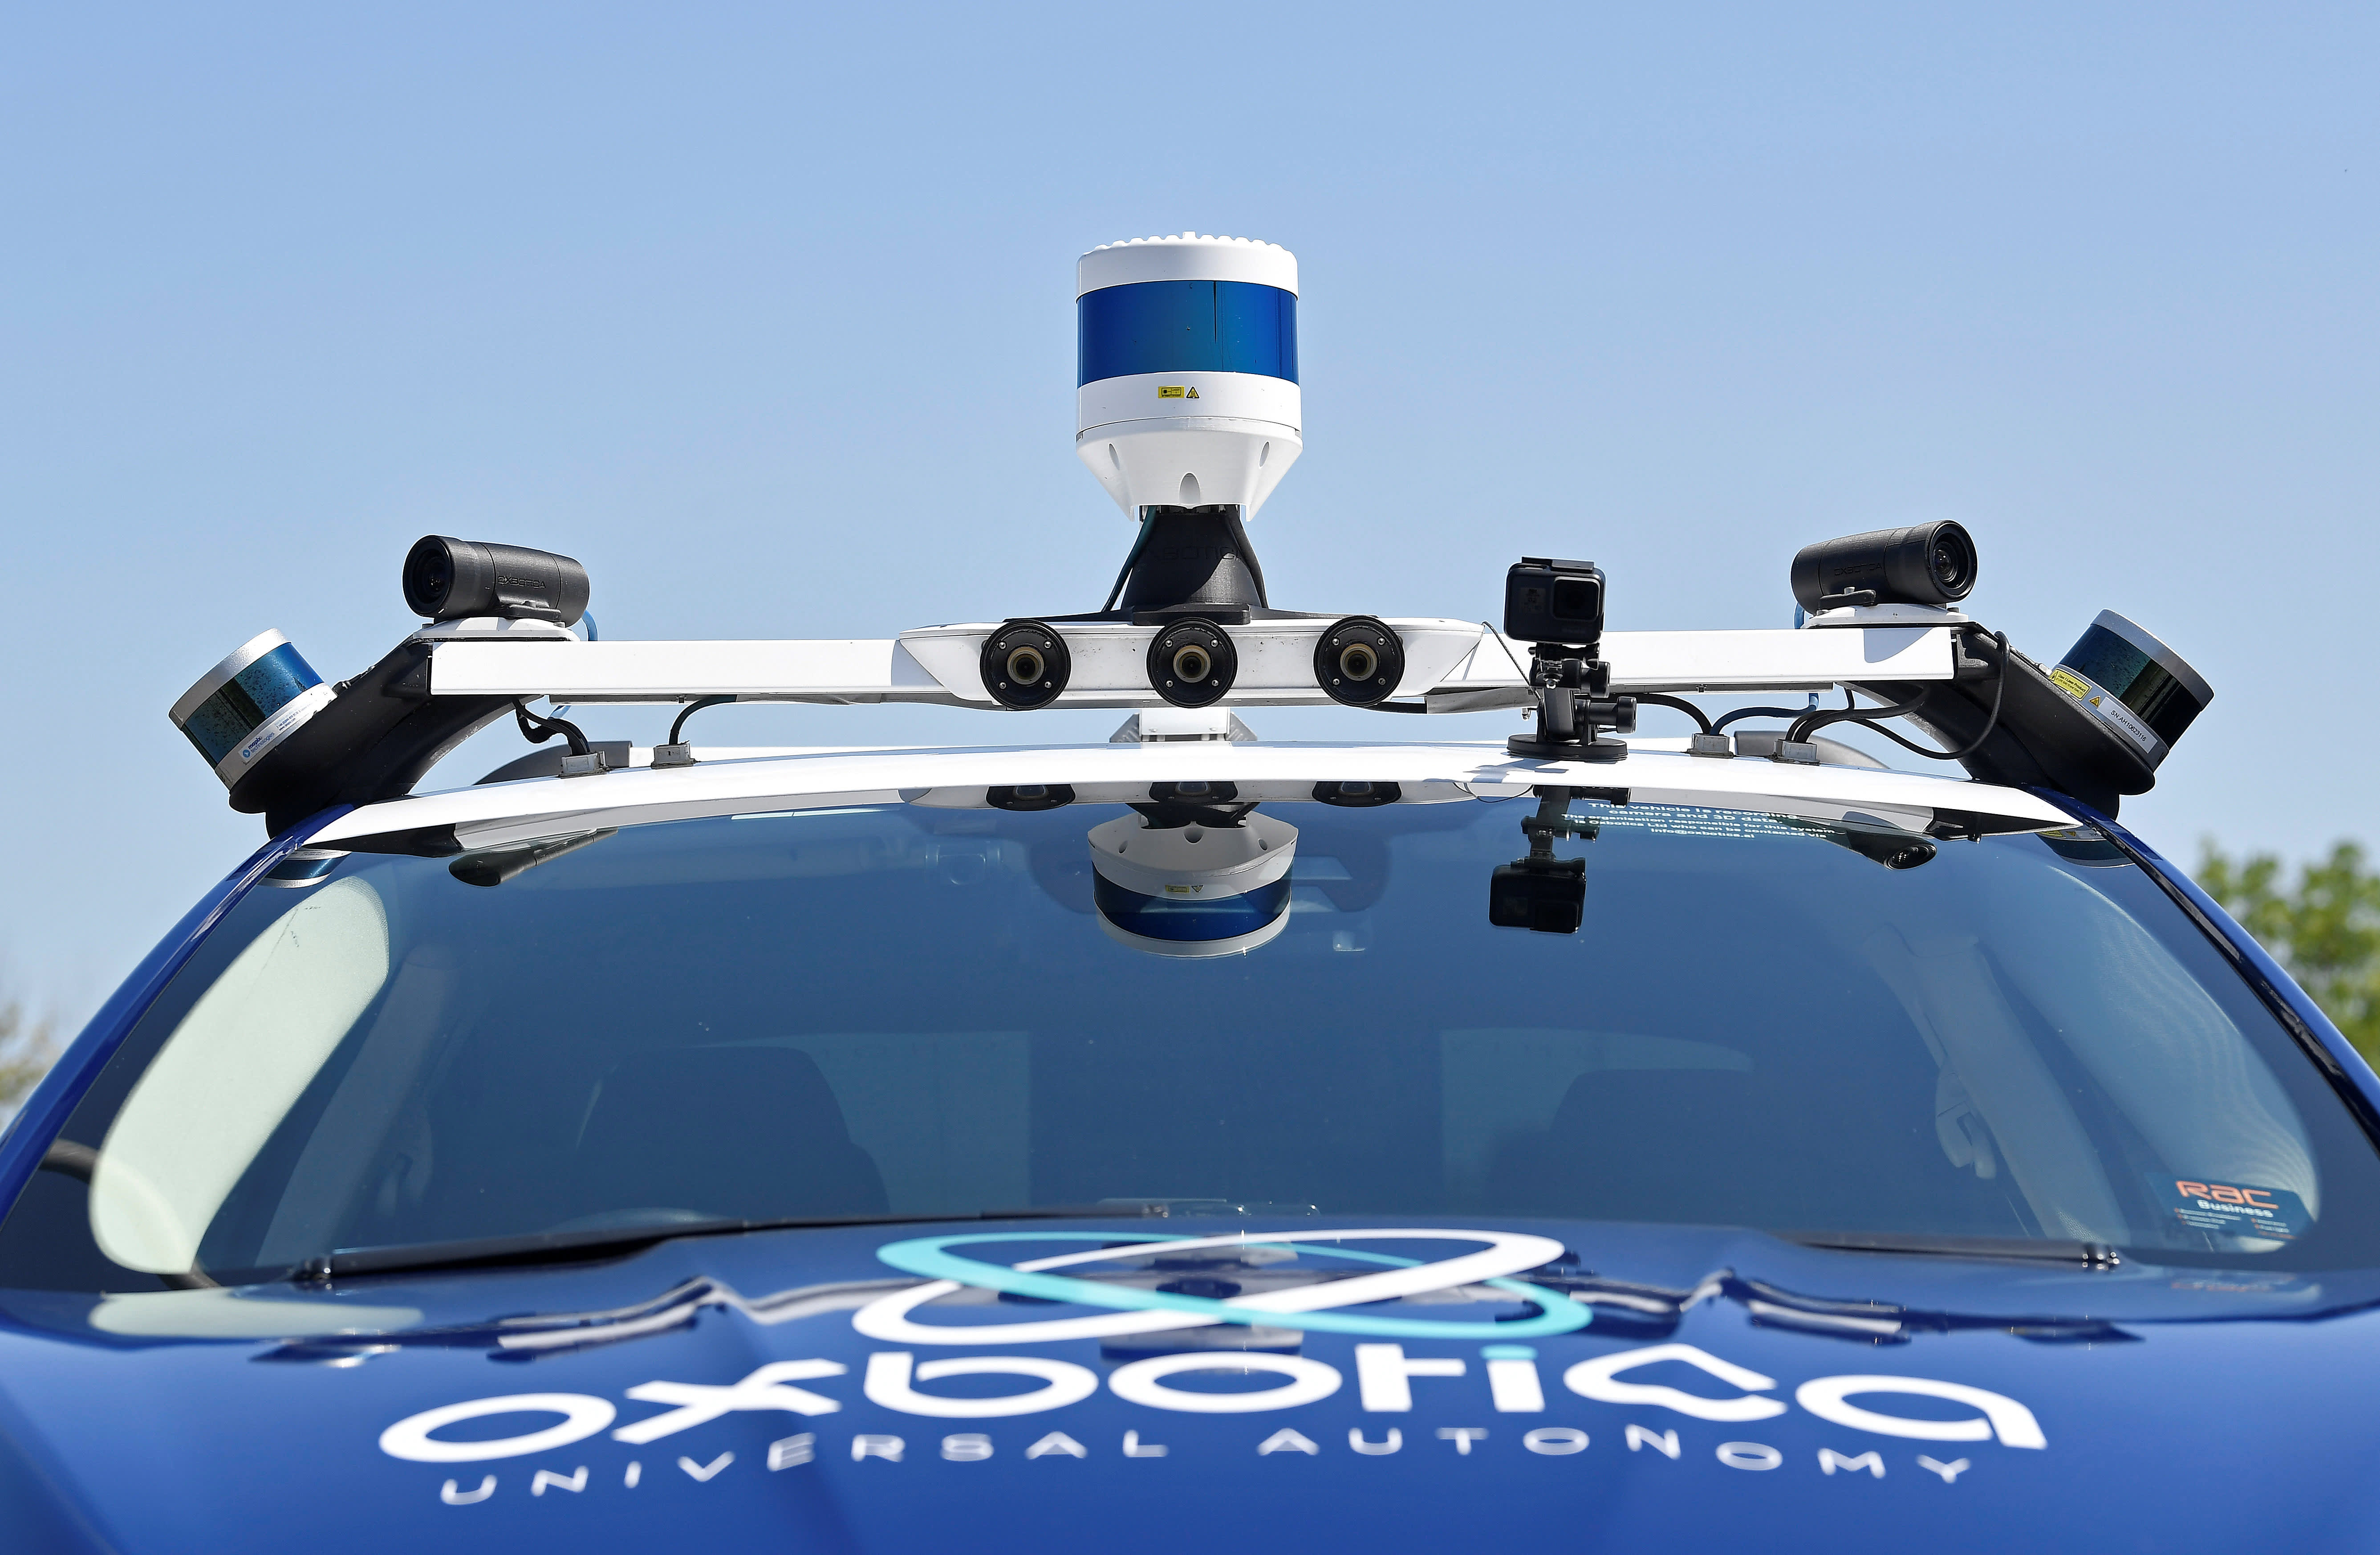 European startups try to develop driverless cars in streets built for horses - Autoblog